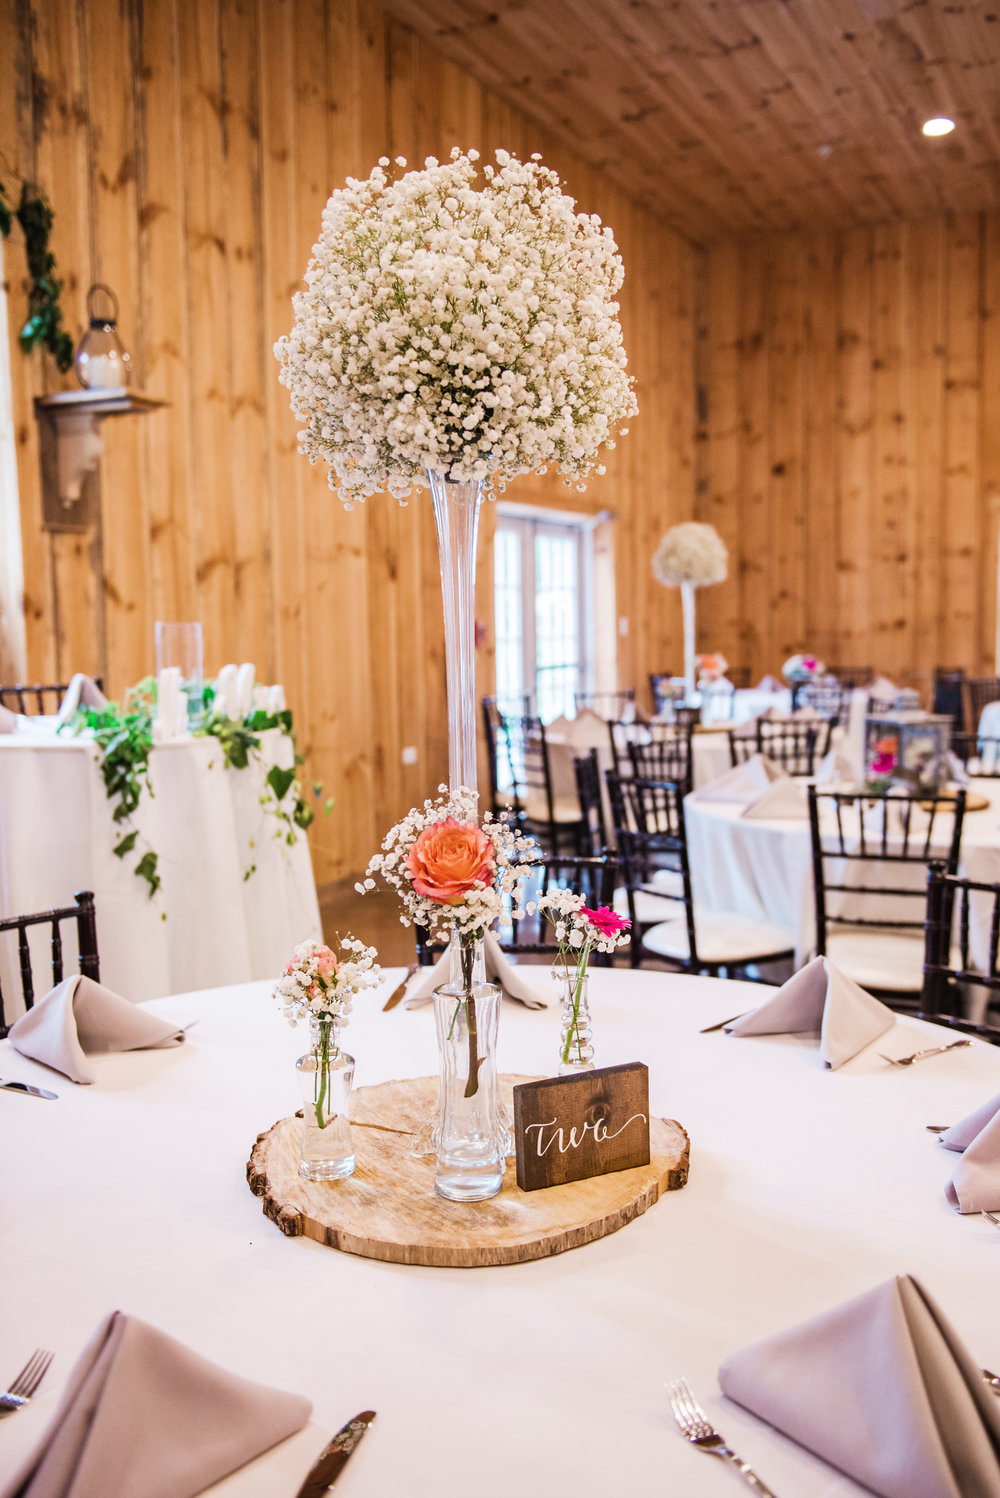 Wolf_Oak_Acres_Central_NY_Wedding_JILL_STUDIO_Rochester_NY_Photographer_DSC_8243.jpg